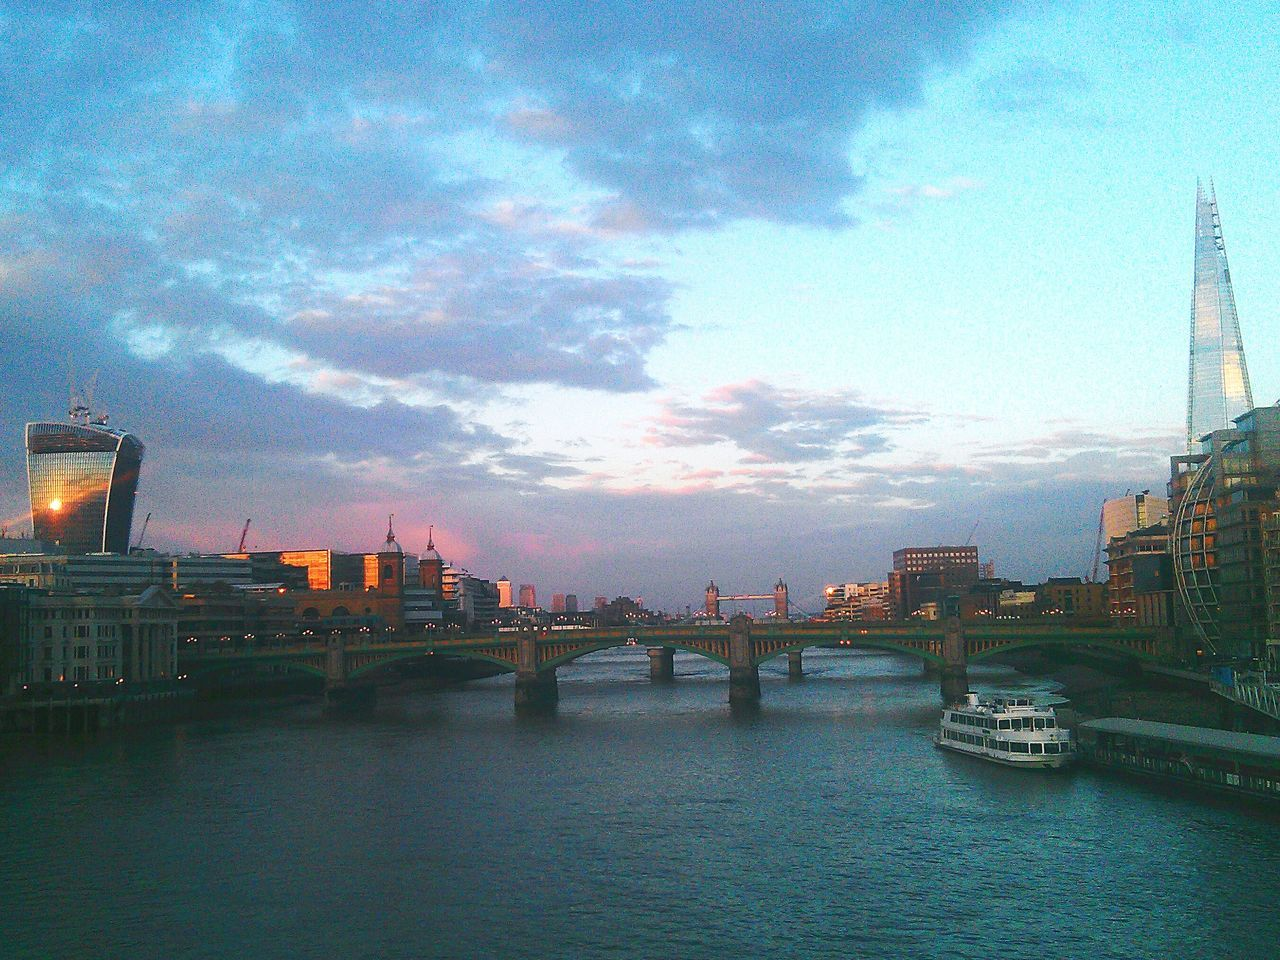 The Shard, London Tower Bridge  River Thames Evening Walk Cityscapes Exolore Your City Londonlife Discover Your City Sunset Sun Reflection